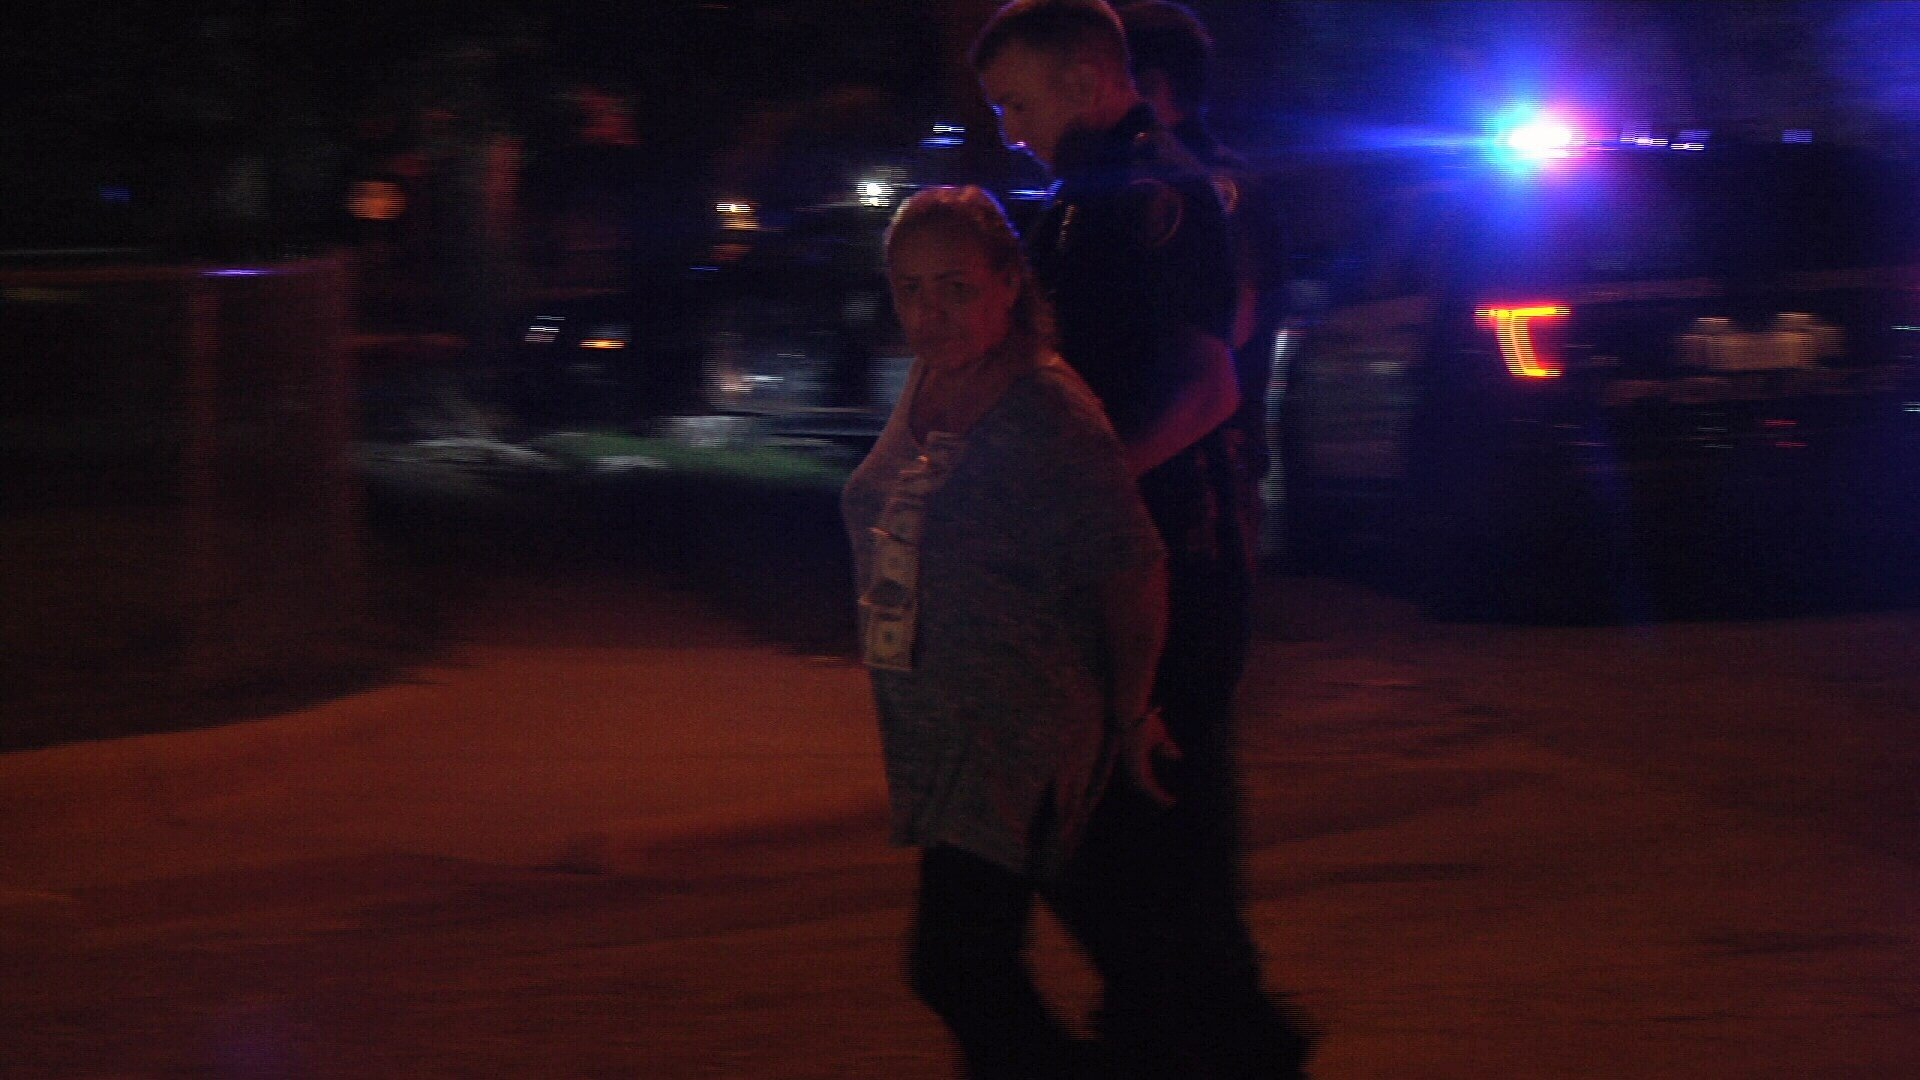 A woman drove herself to the scene of an accident that her son was involved in. She was arrested for DWI.